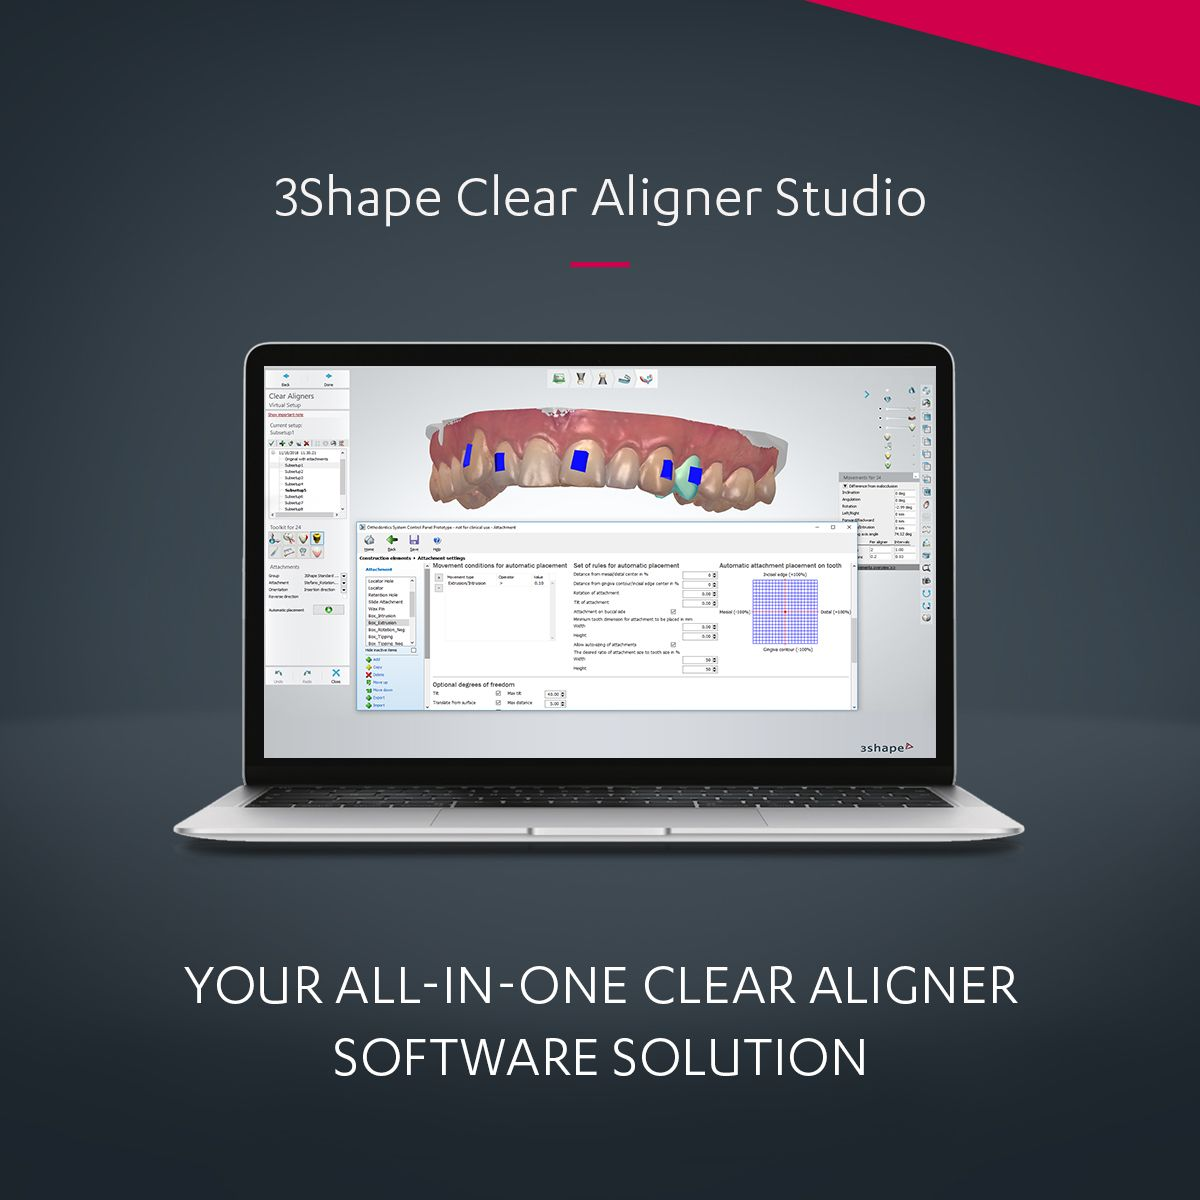 3Shape Clear Aligner Studio - All-in-one Orthodontic Solution